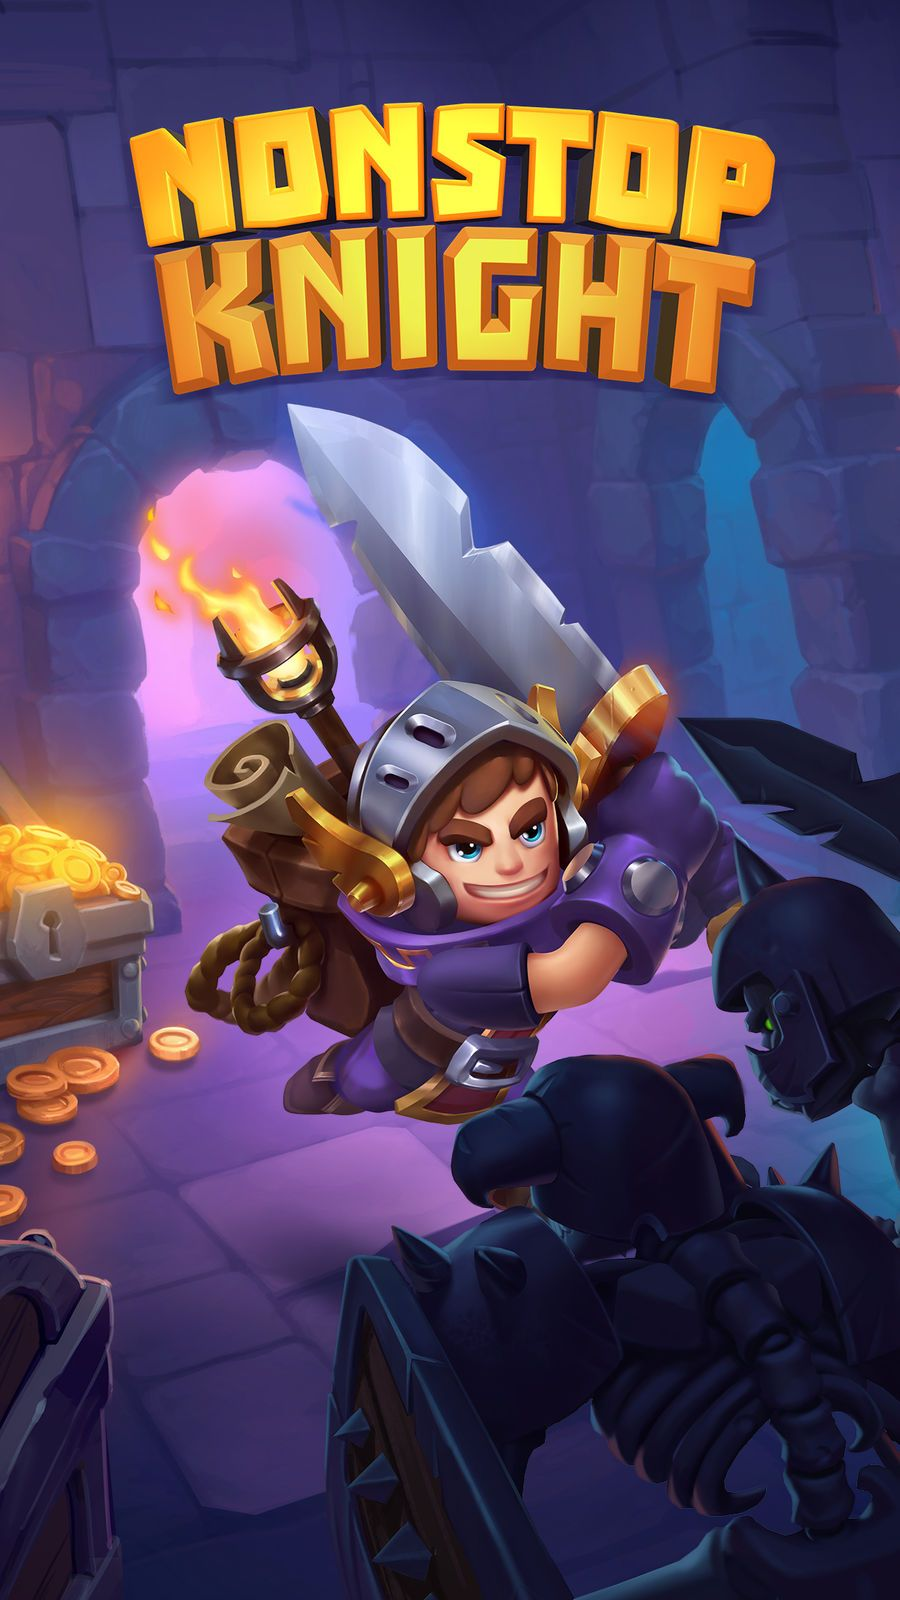 Nonstop Knight Idle RPG GamesGmbHRoleAction Knight